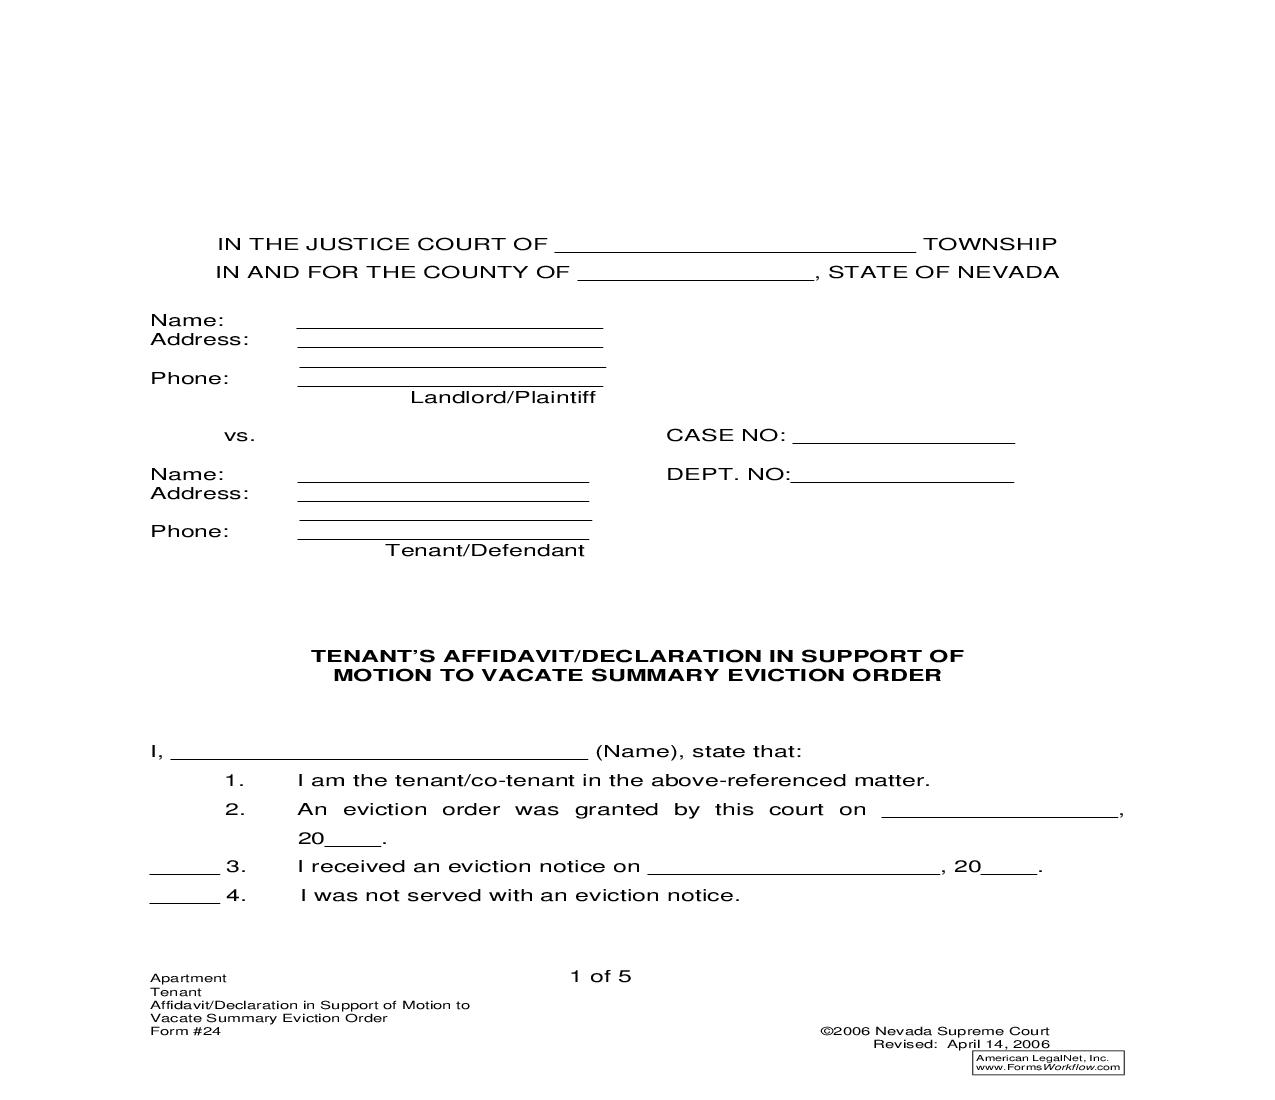 Tenants Affidavit Or Declaration In Support Of Motion To Vacate Summary Eviction Order {24} | Pdf Fpdf Doc Docx | Nevada